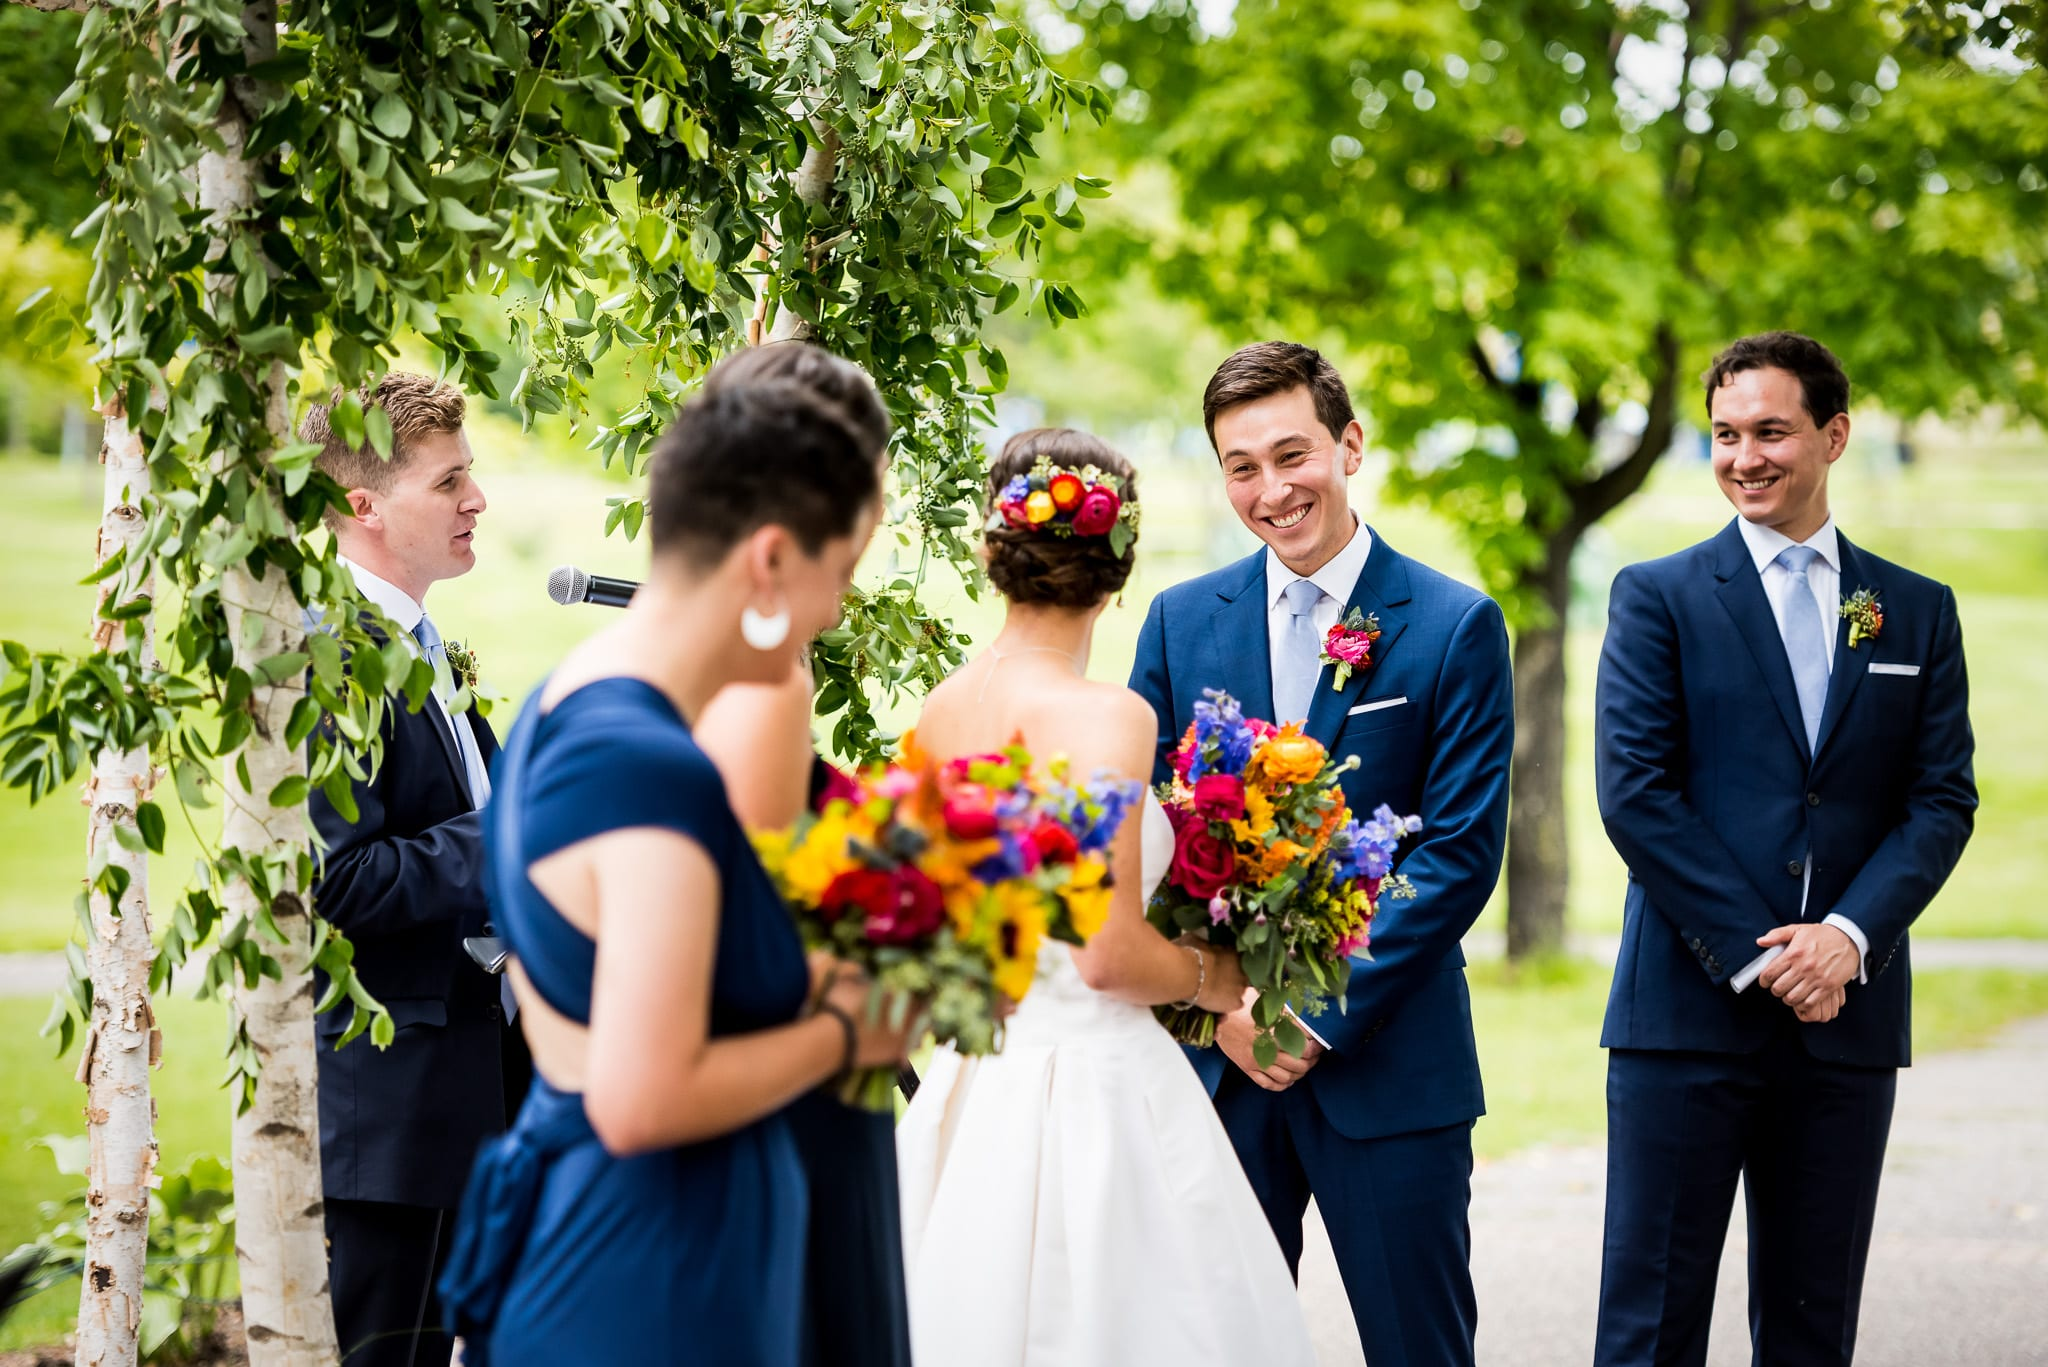 groom with massive smile while looking at his bride to be, surrounded by their wedding party